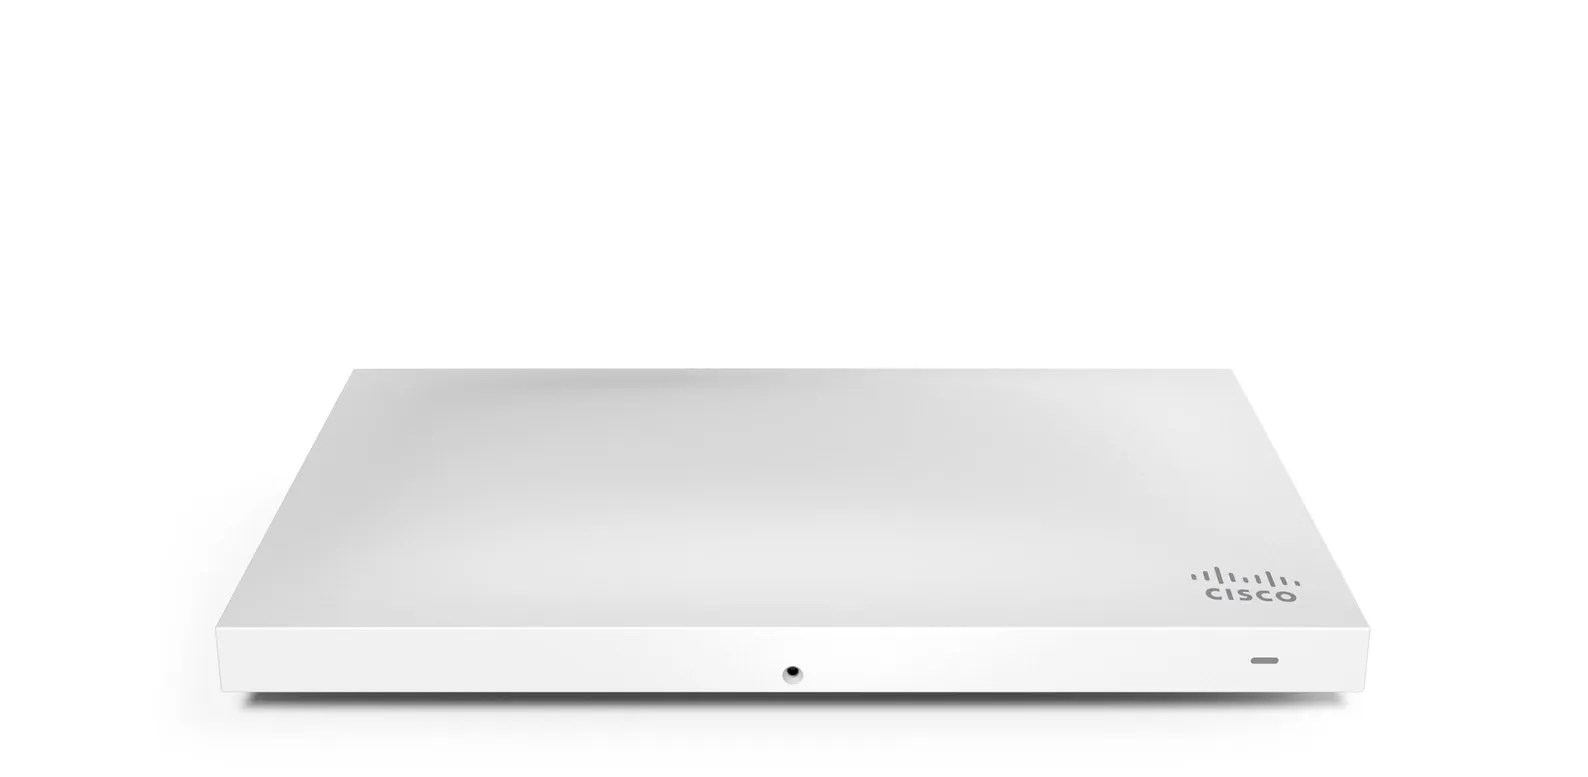 Cisco Meraki MR42 access point